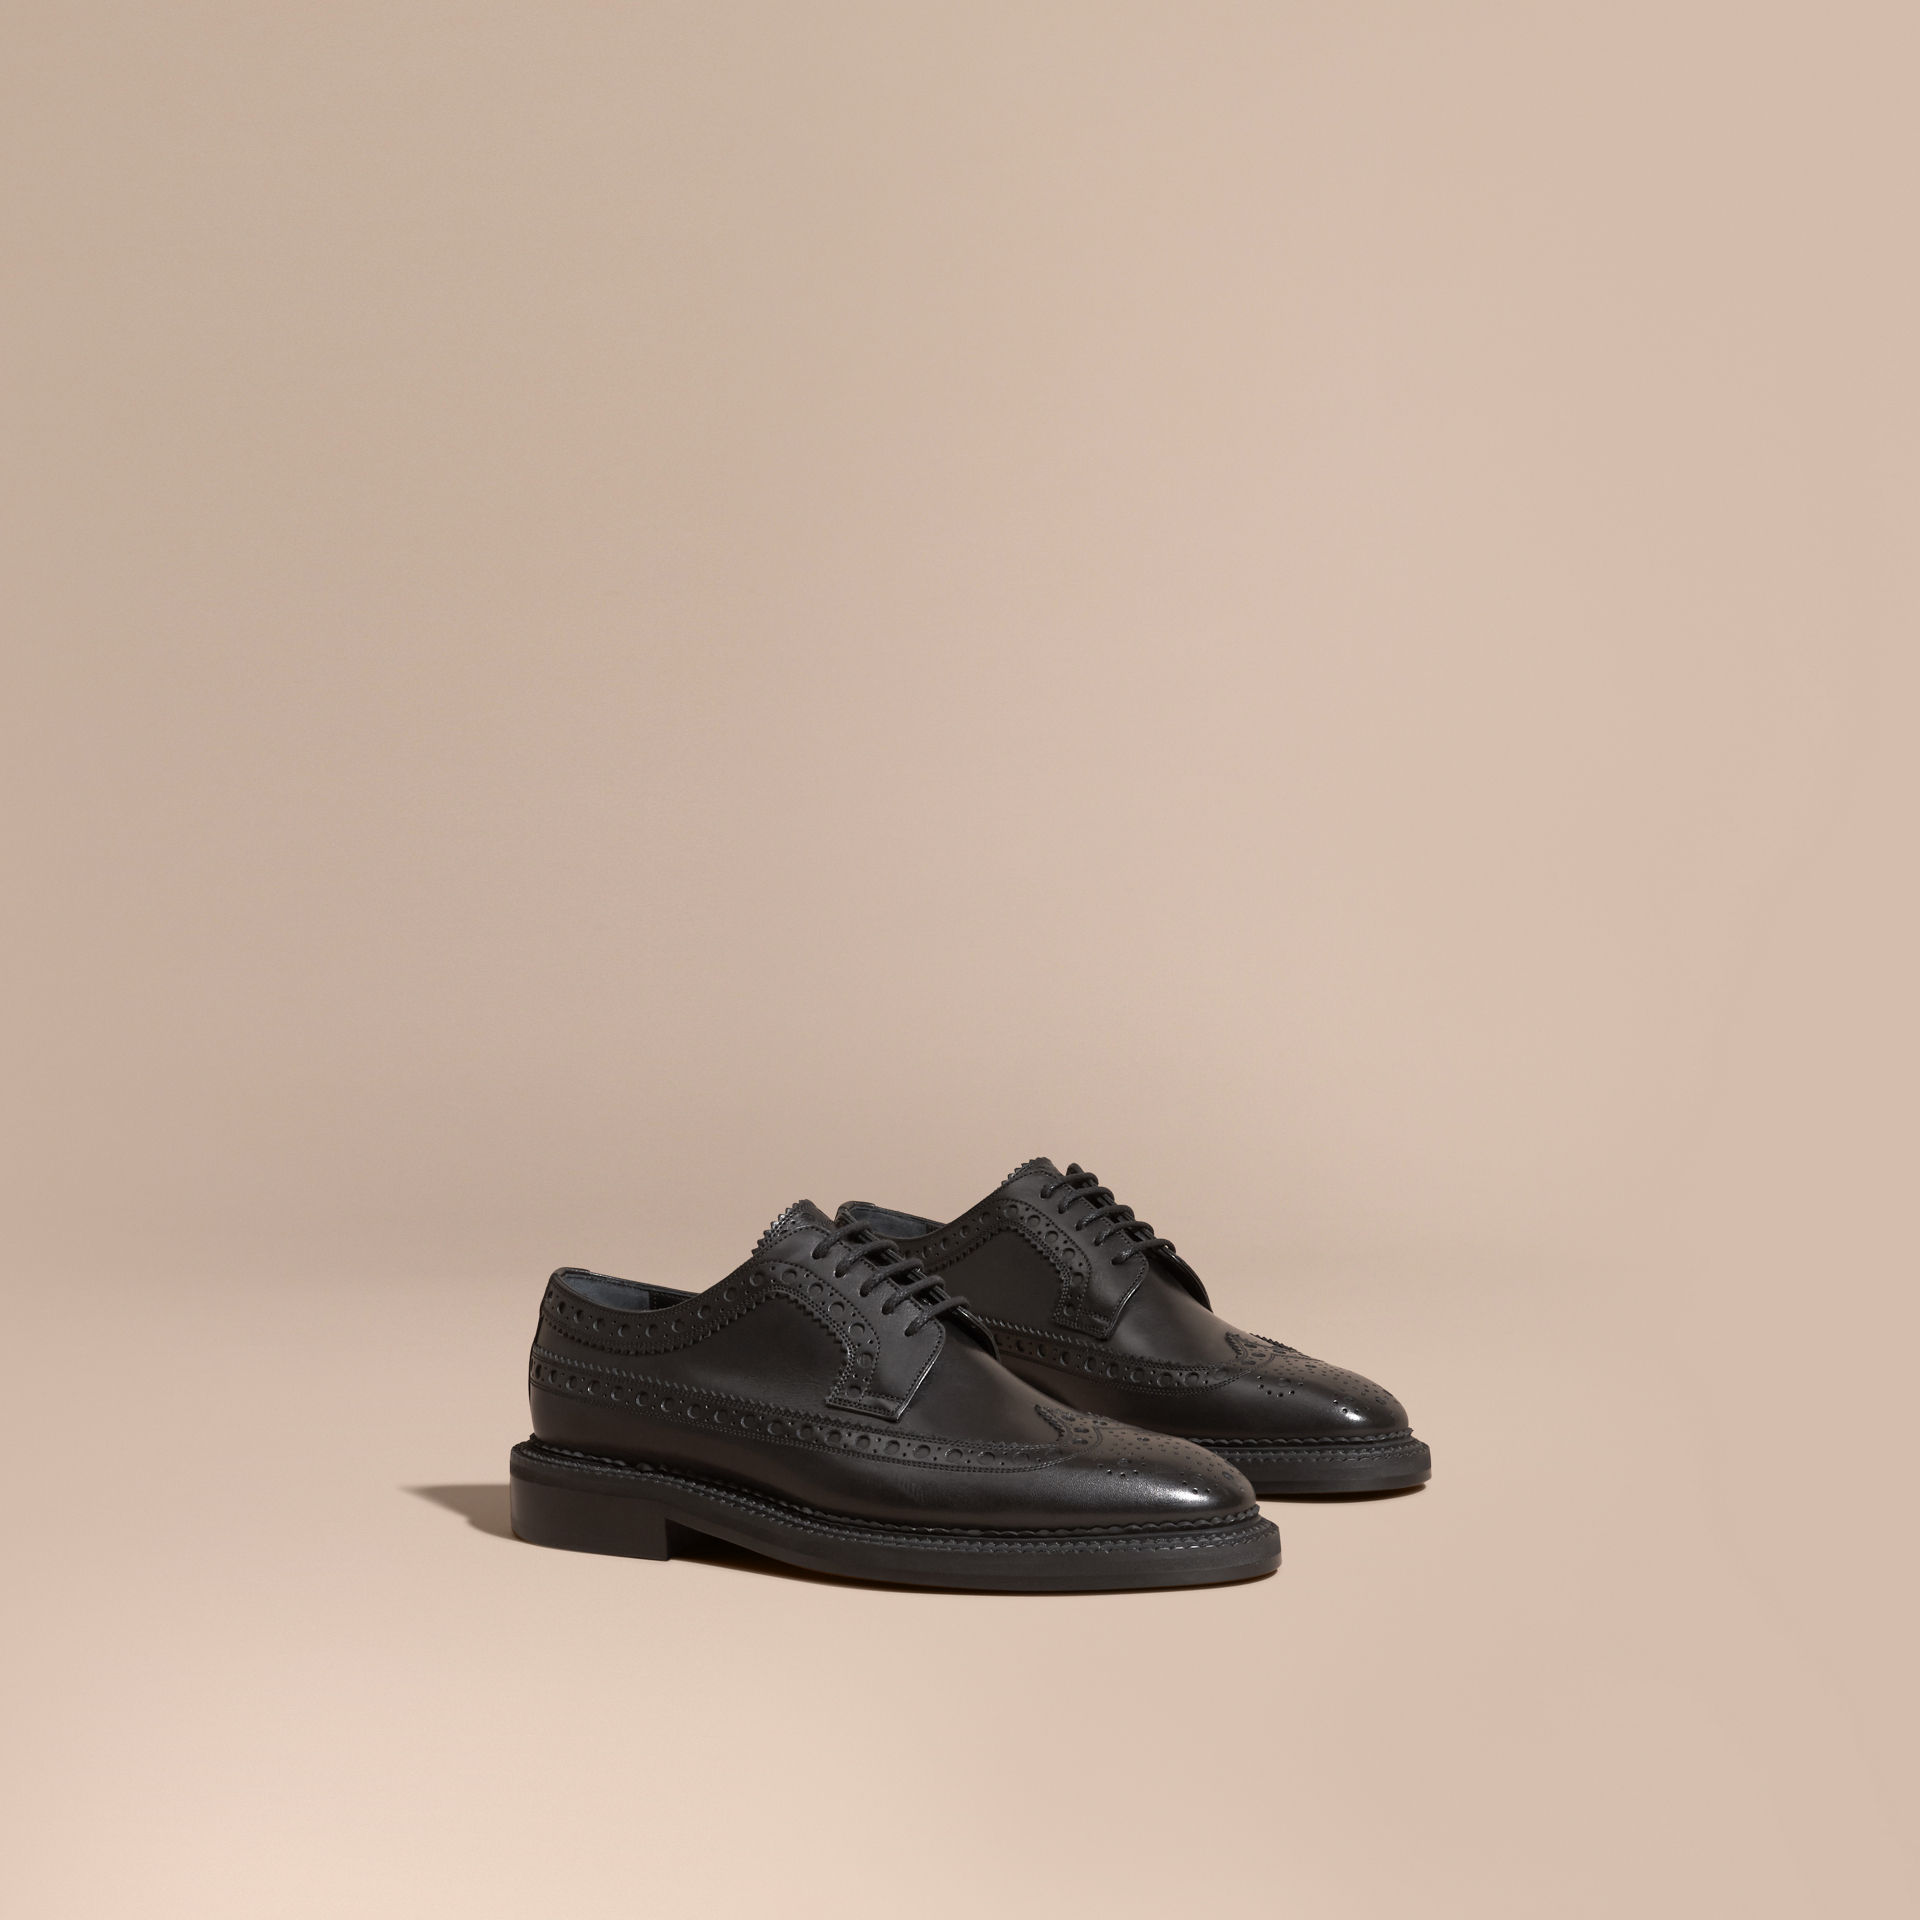 Burberry Black Leather Wingtip Brogues